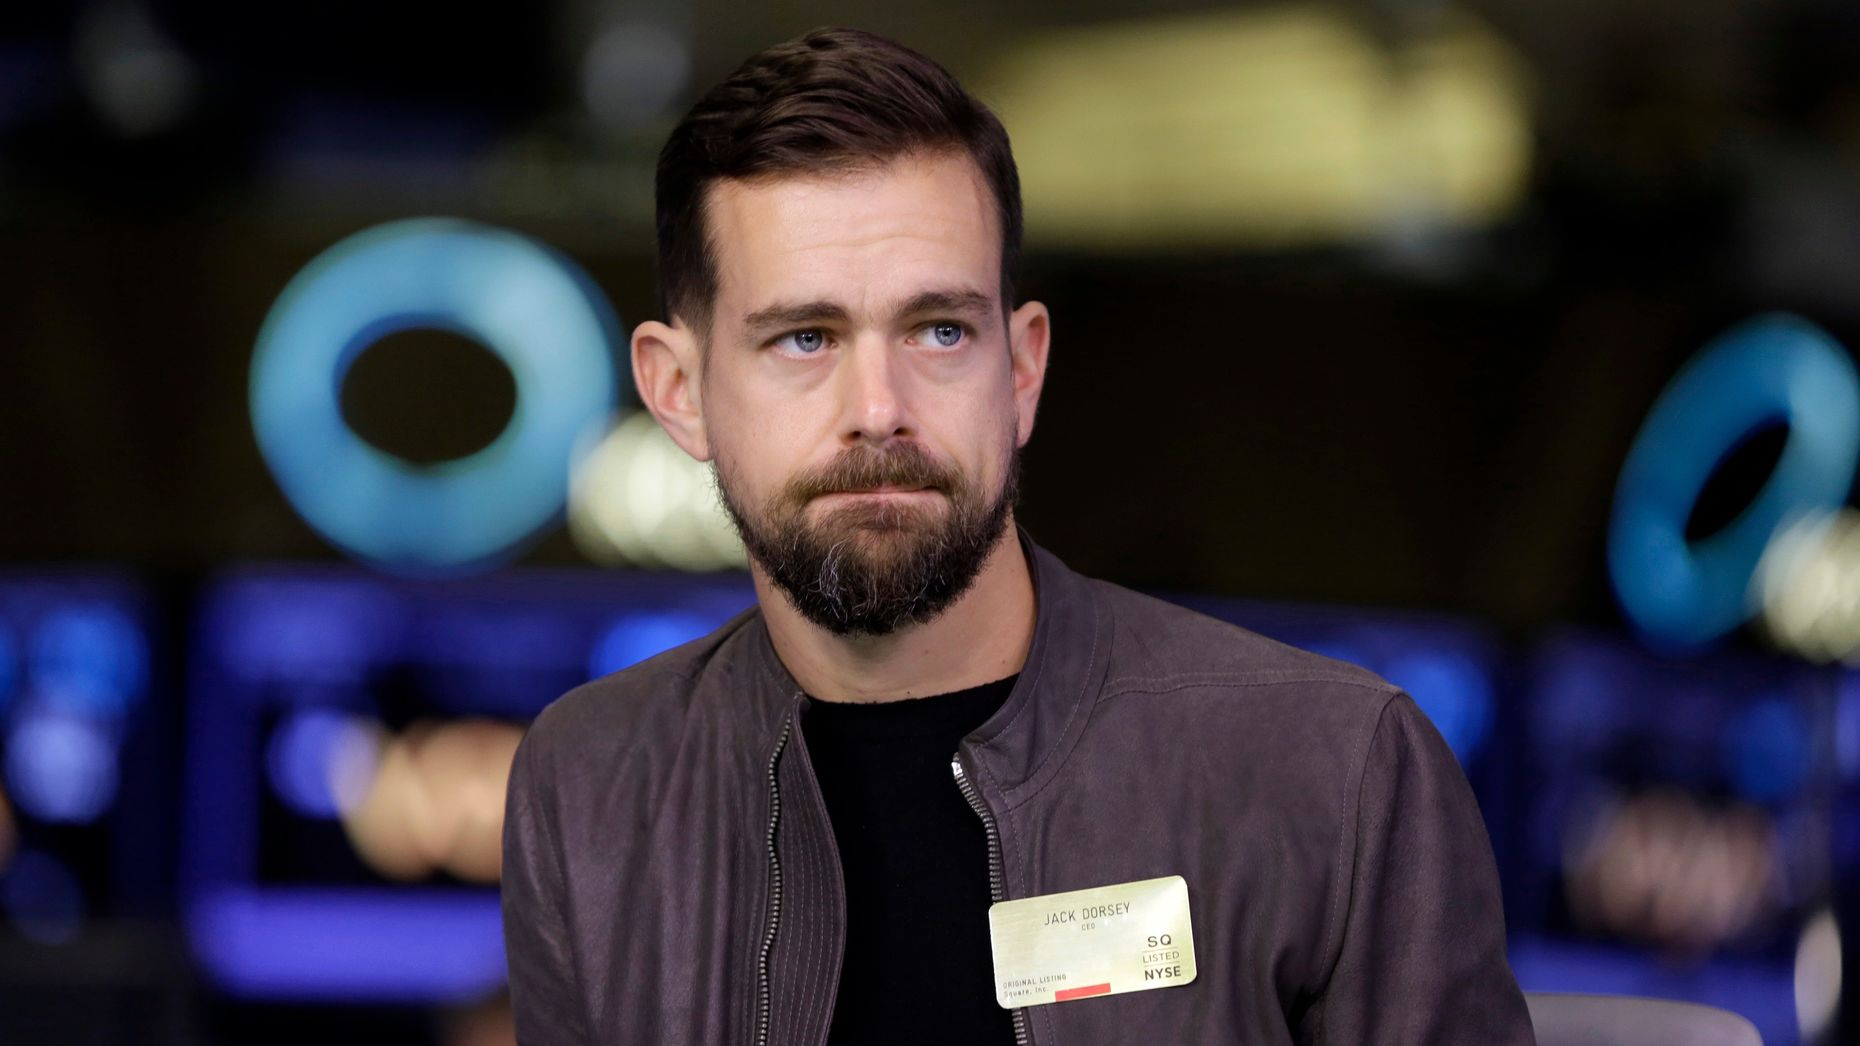 Twitter CEO Jack Dorsey. Photo by AP.